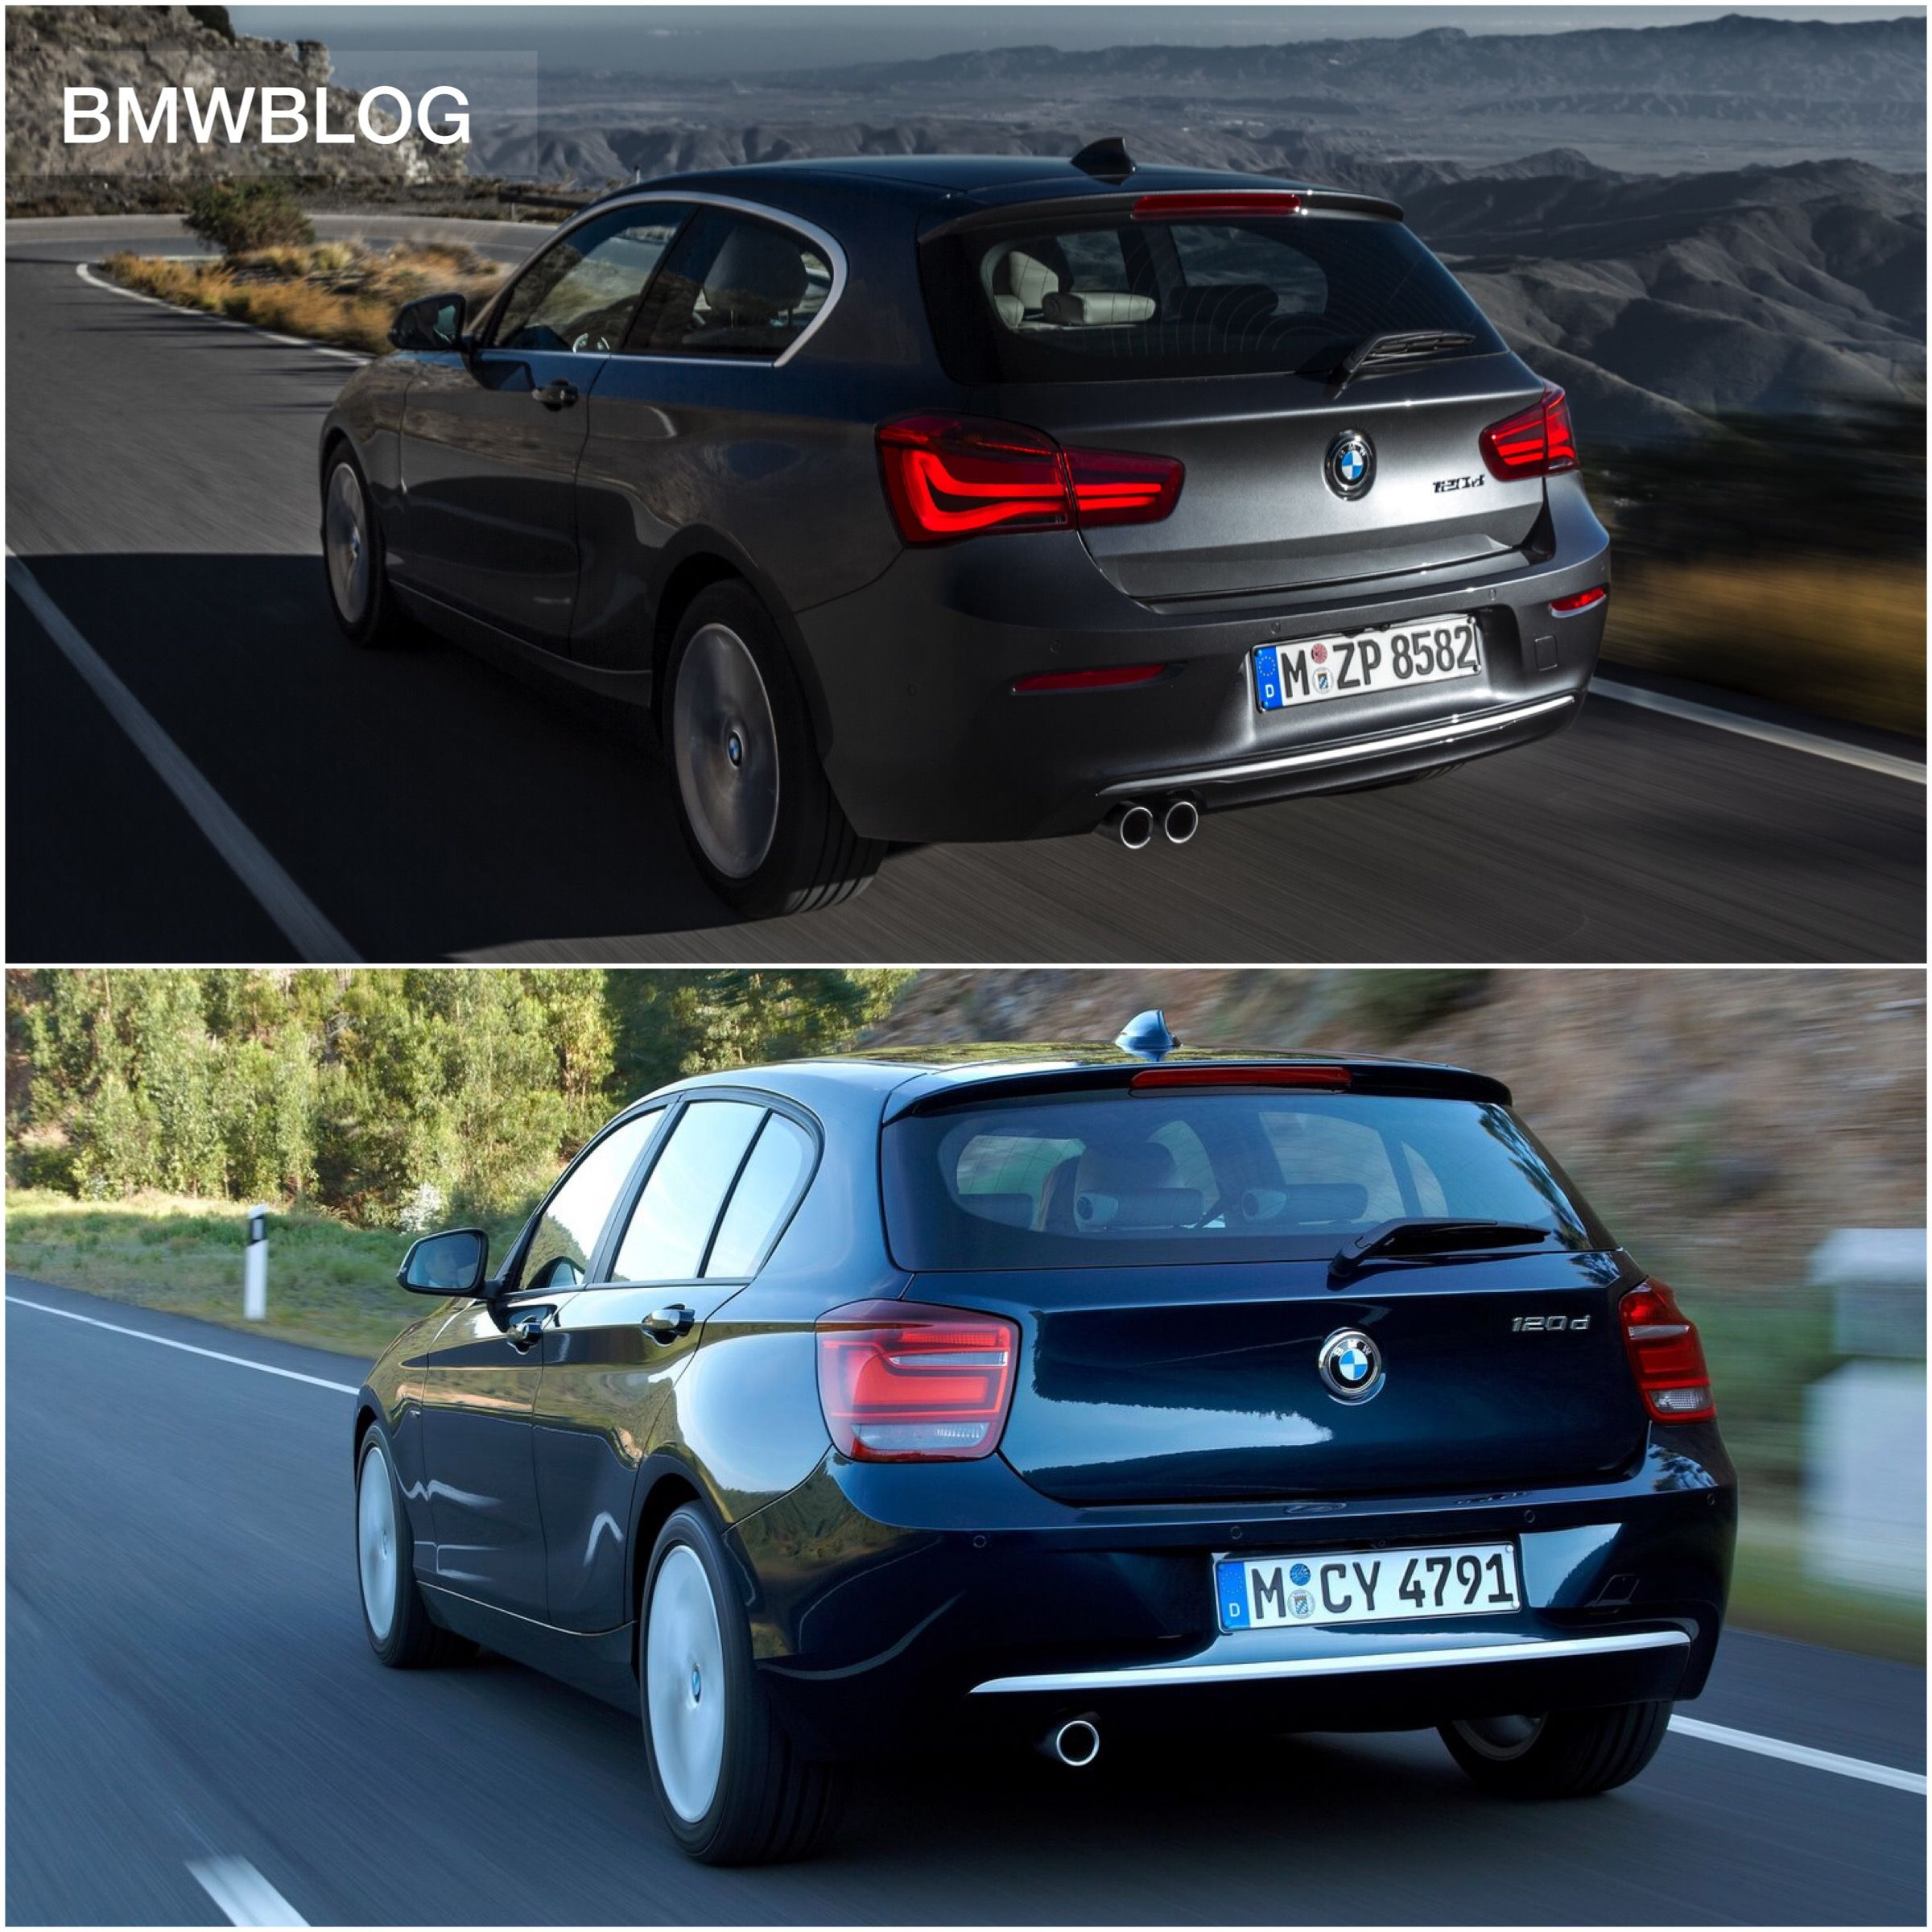 2015 bmw 1 series facelift new vs old side by side comparison http